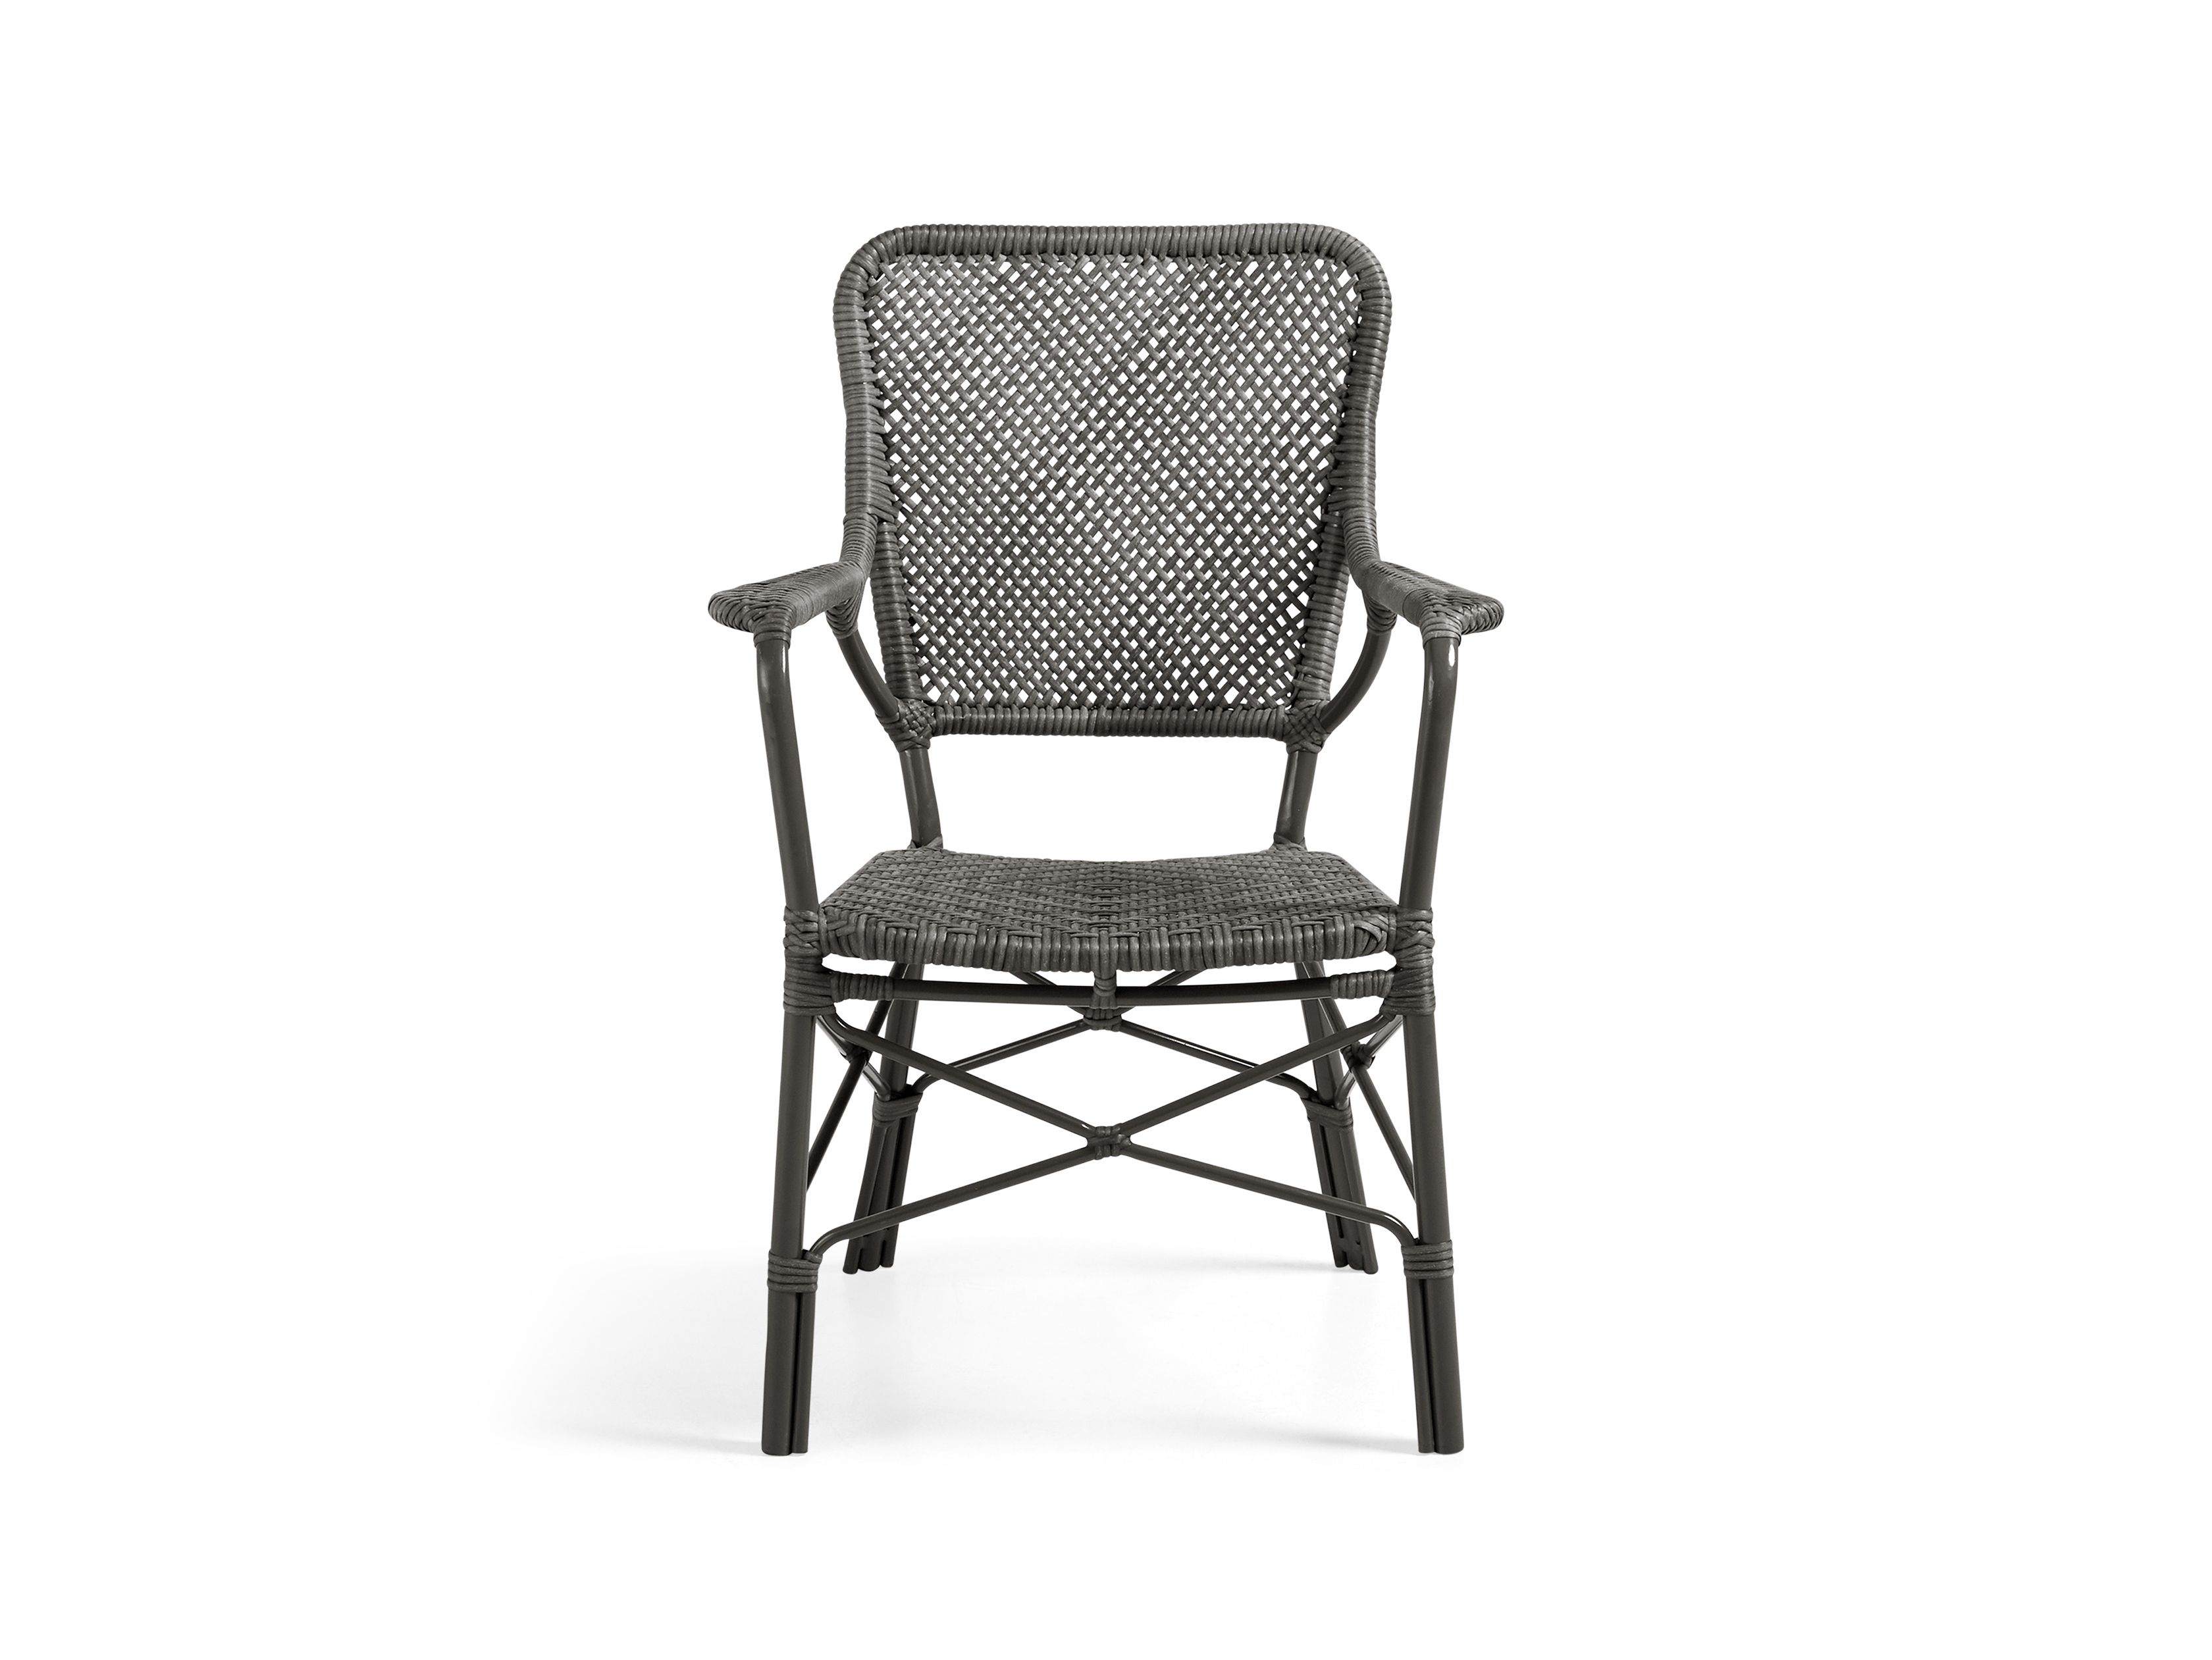 Riviera Outdoor Bistro Chair - Arhaus Furniture